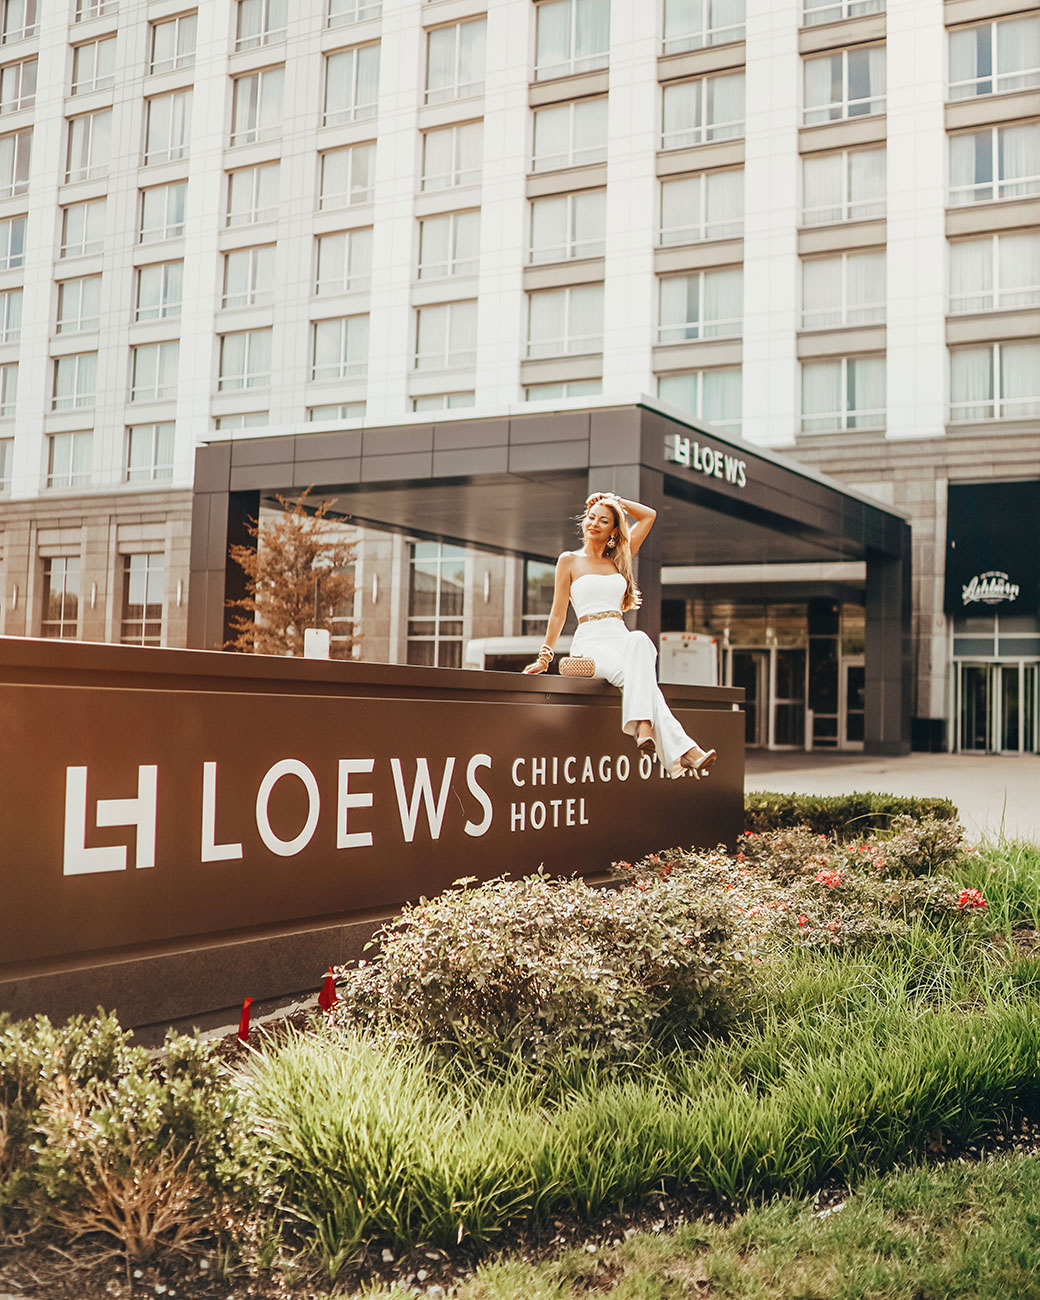 Loews Chicago O'Hare   Chicago staycation   Staycation in Chicago   Chicago staycation ideas   Staycation near Chicago   Rosemont staycation   Rosemont restaurants   Rosemont mall   Hotels by Rosemont   Travel Chicago   Bubbly Moments